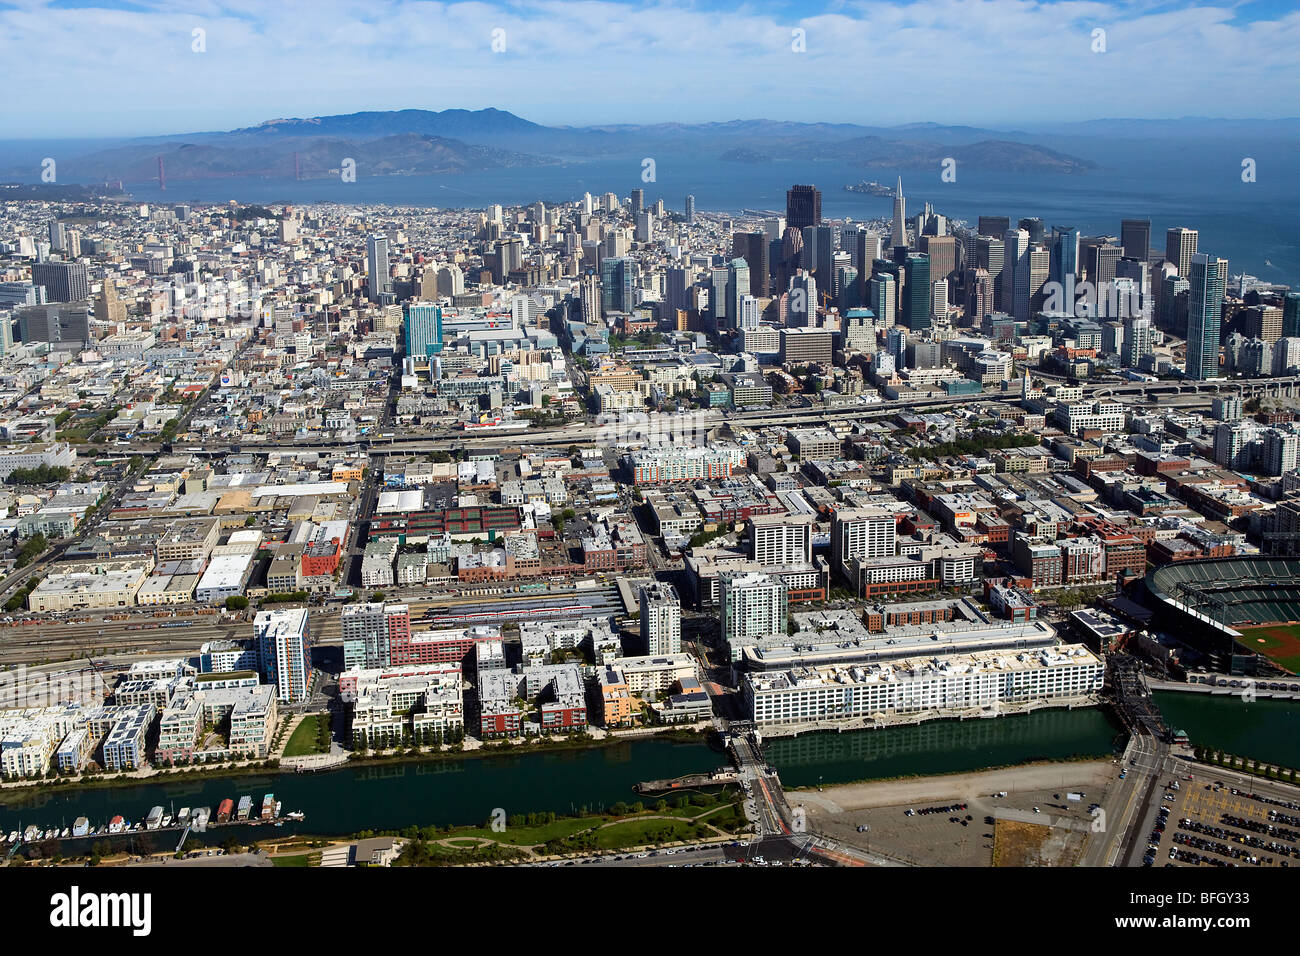 aerial view above San Francisco south of market area Mission Creek - Stock Image